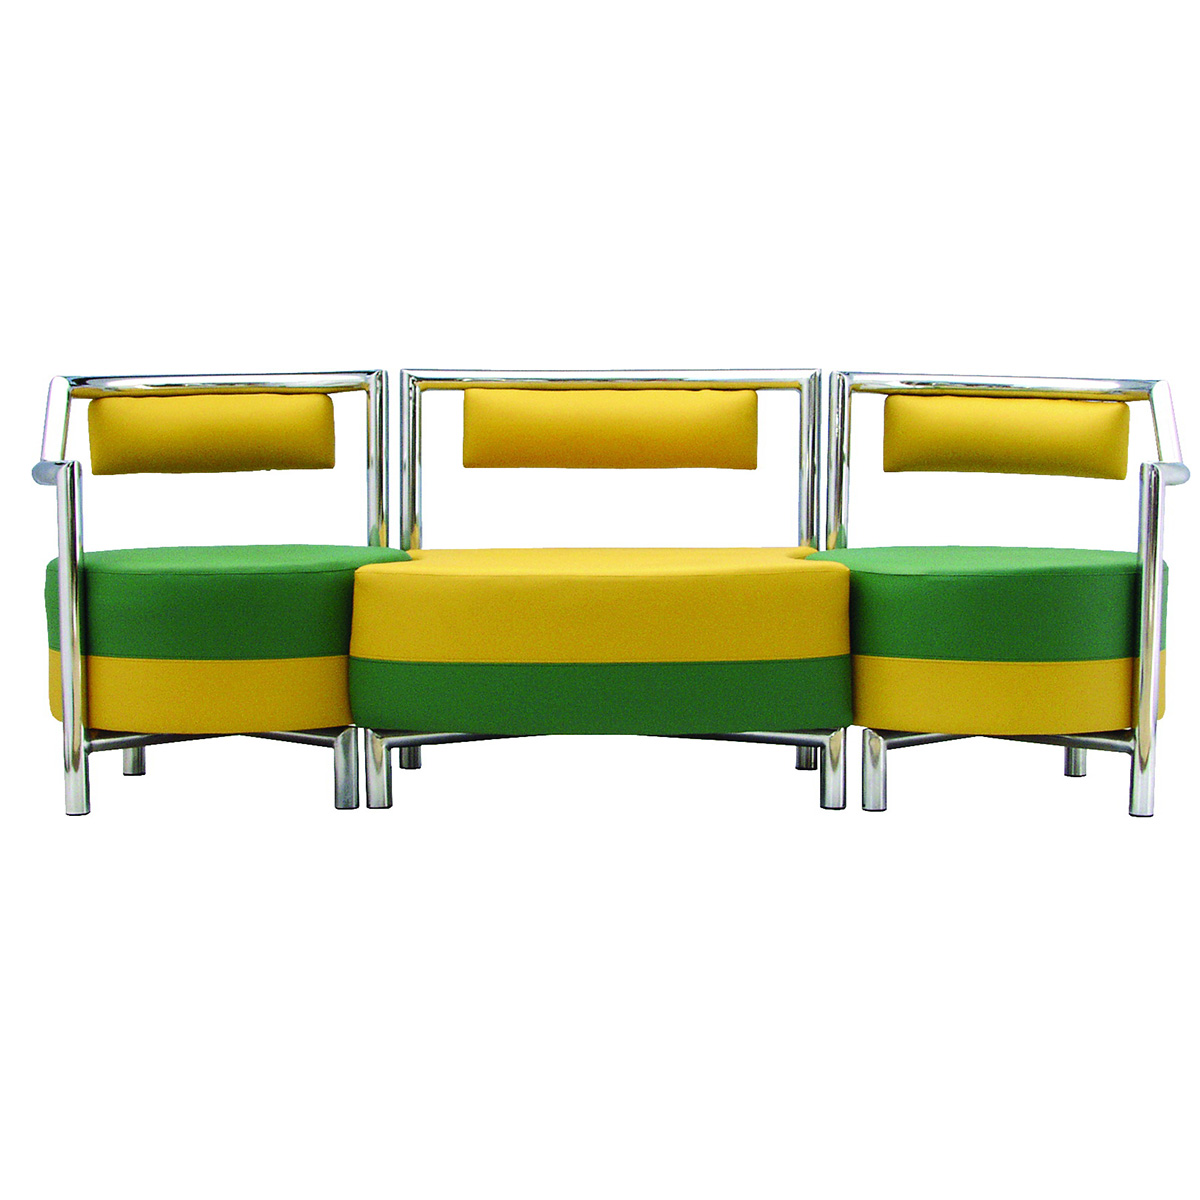 lobby sofa crossword index furniture bed oro made by kodreta modular seating collection